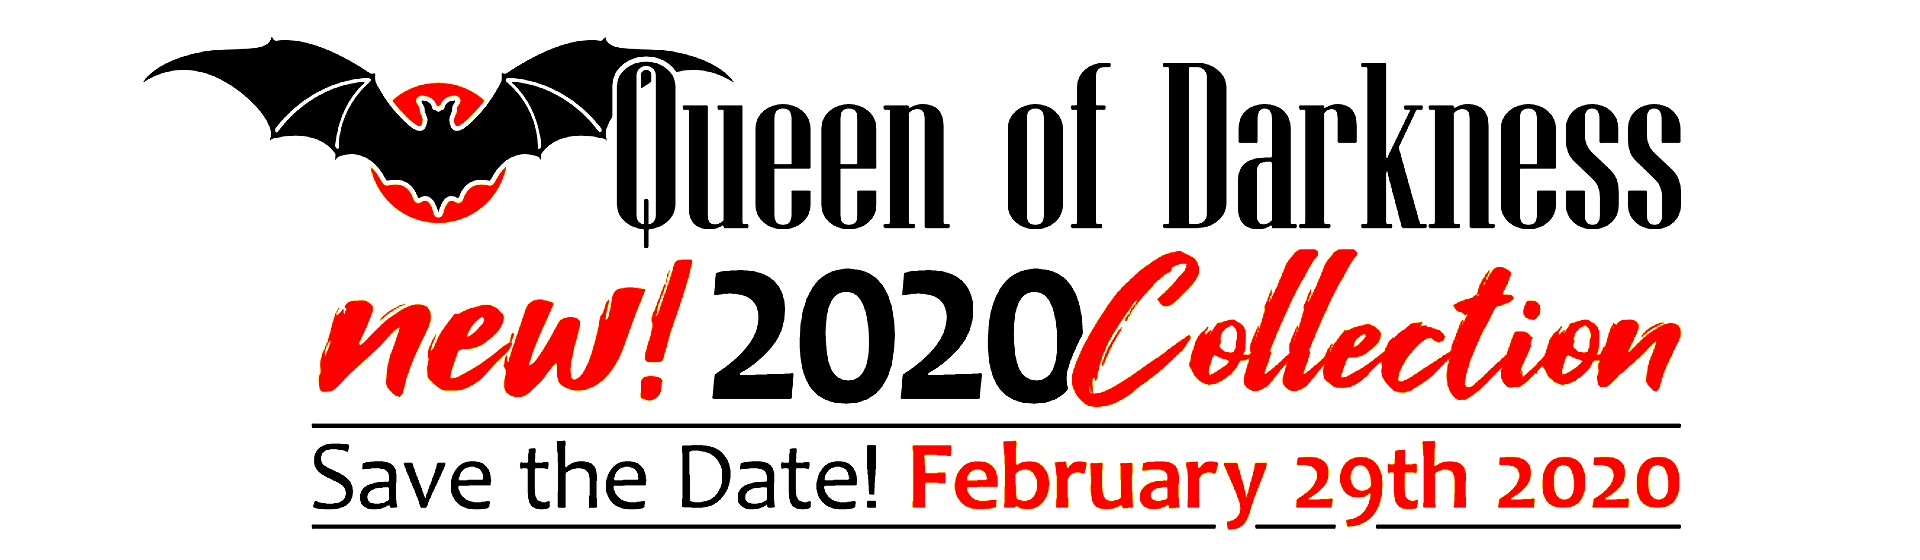 The NEW Queen of Darkness 2020 GOTHIC COLLECTION will be released on February 29th 2020.